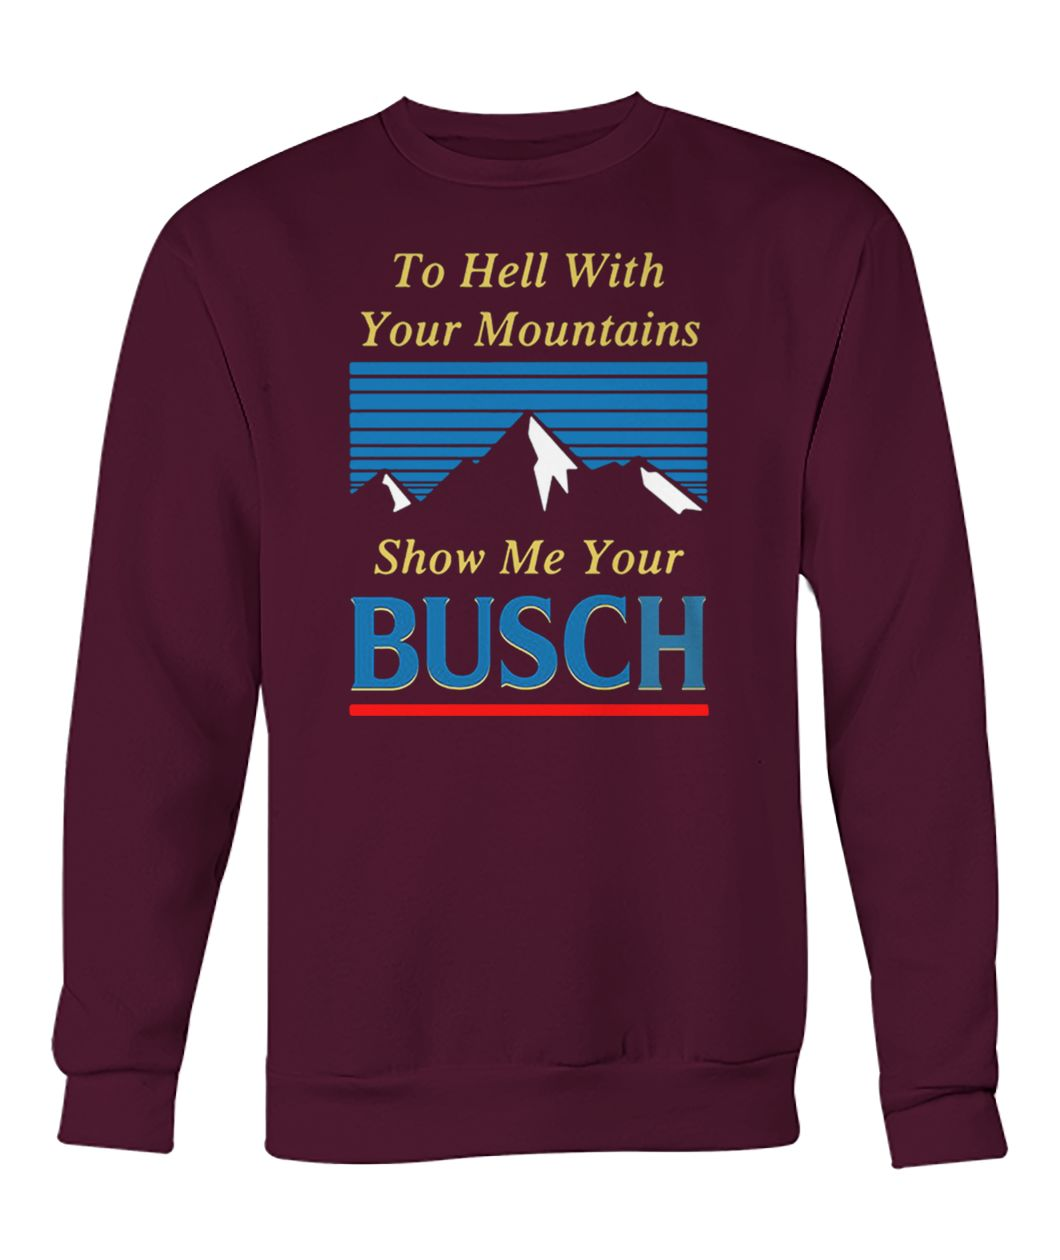 To hell with your mountains show me your busch light crew neck sweatshirt